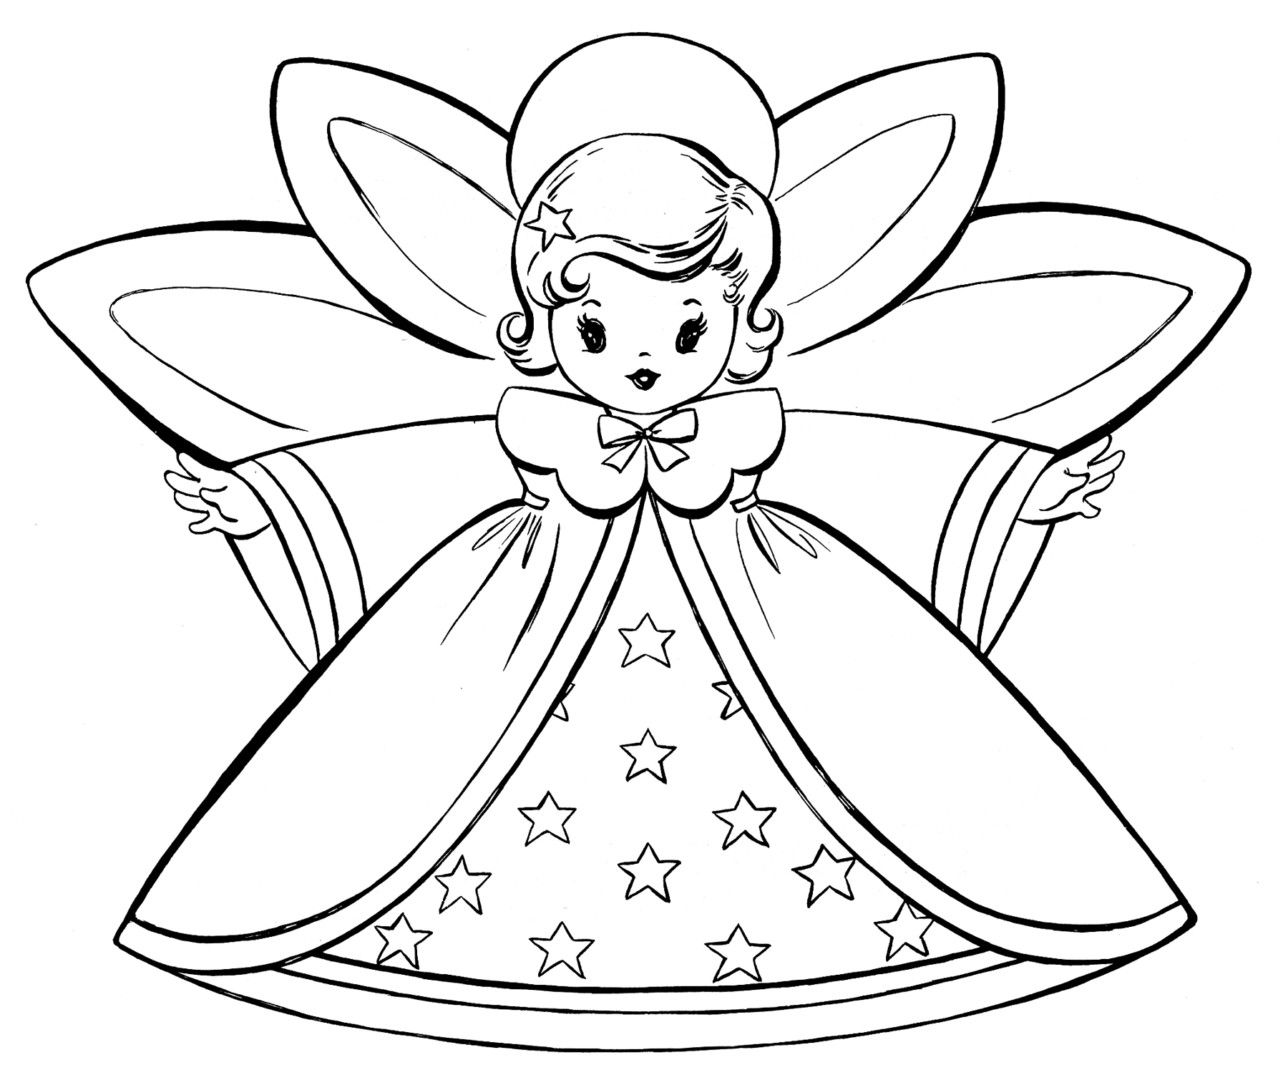 httpcoloringscochristmas angels coloring pages - Angel Coloring Page